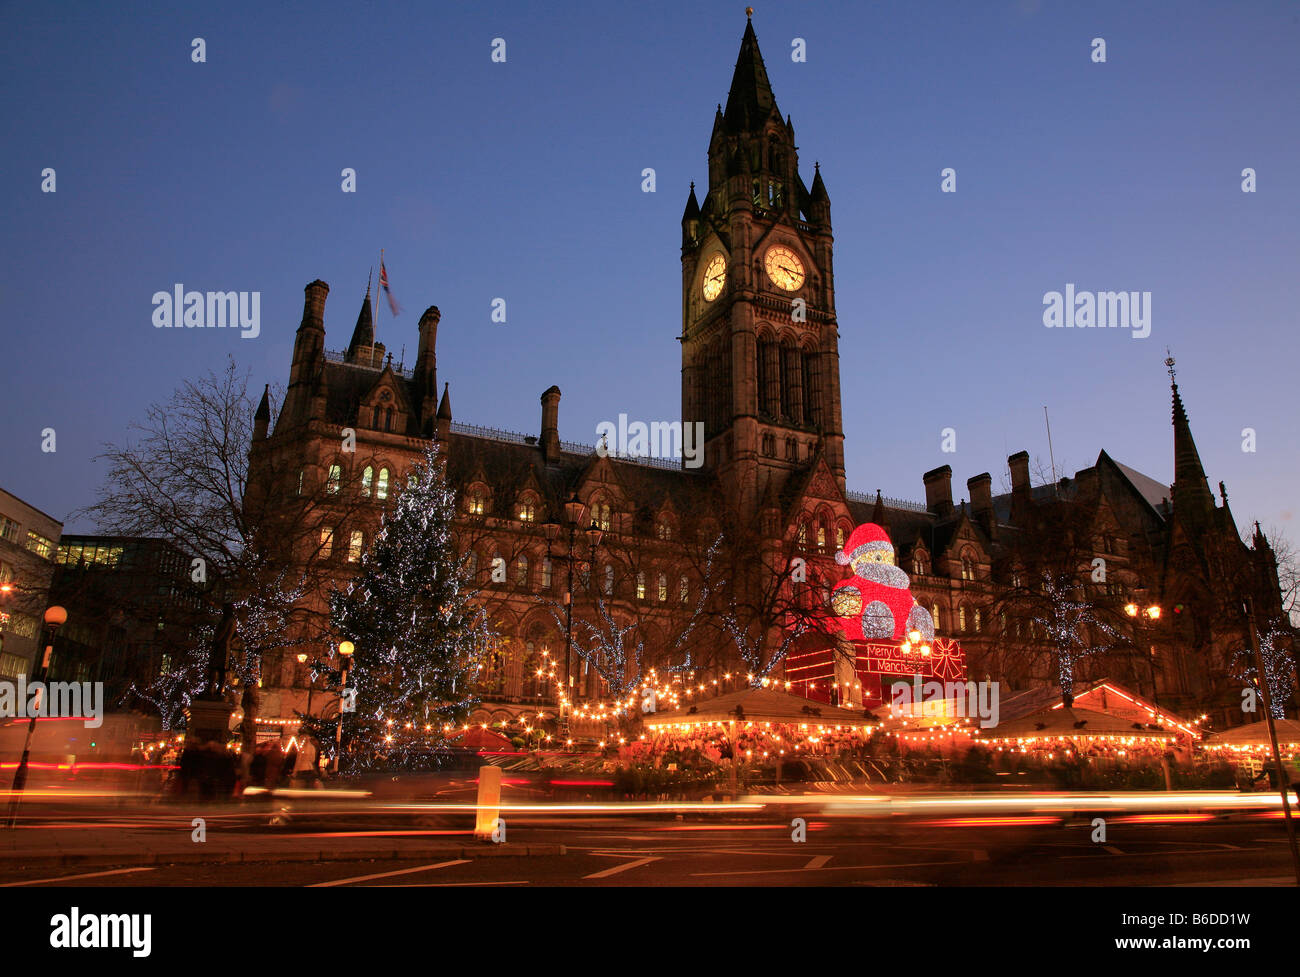 Night time at Albert Square at Christmas, Manchester - Stock Image